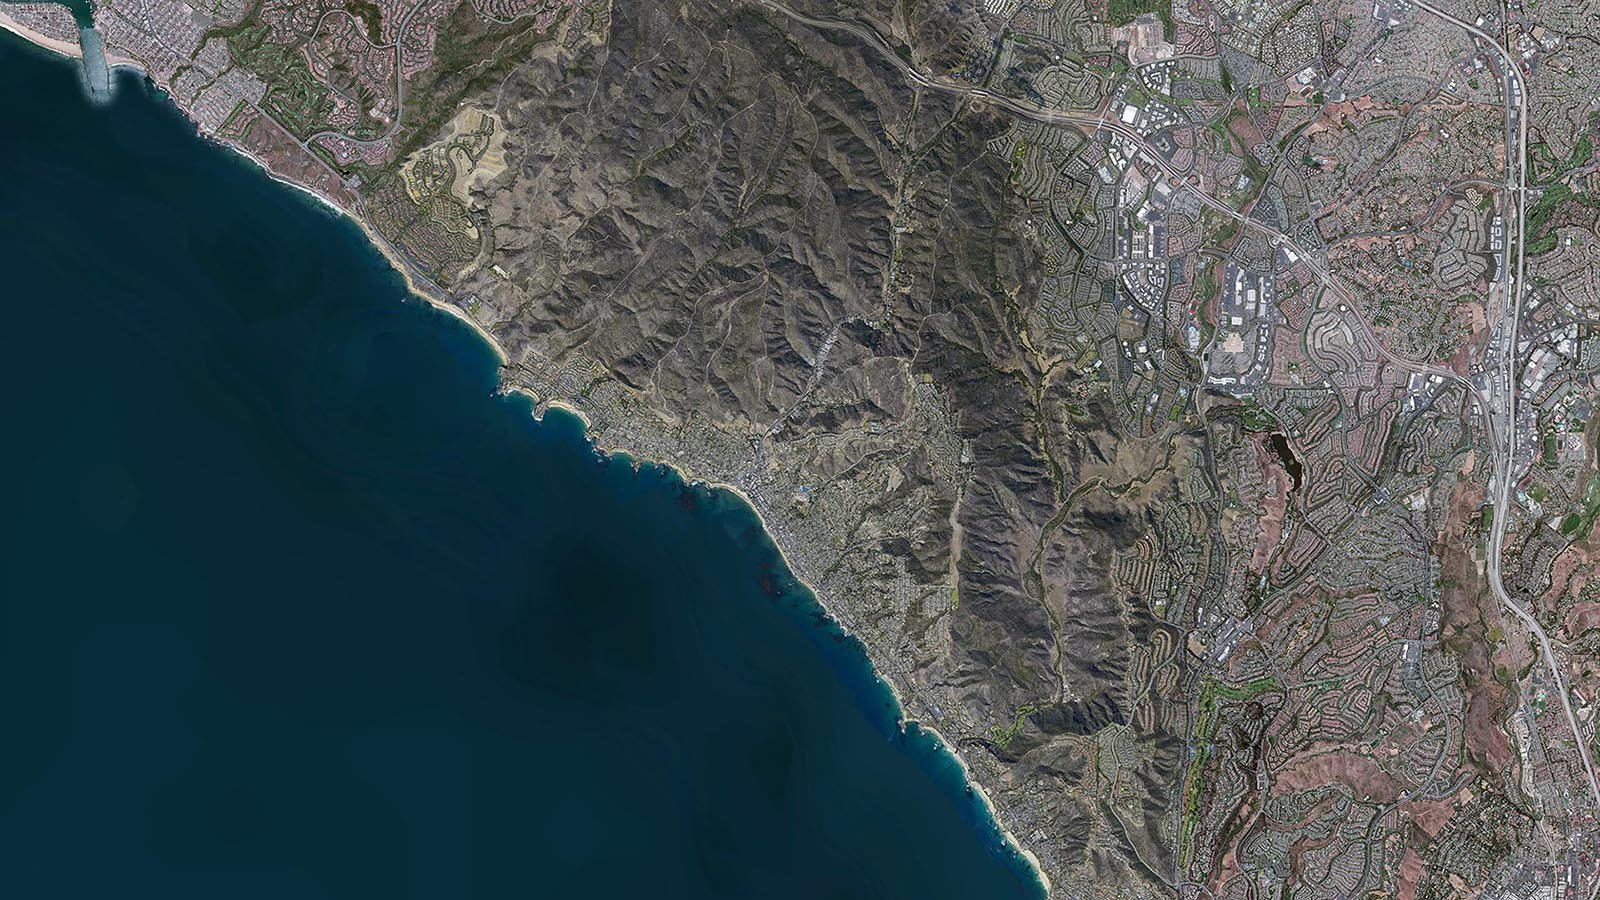 Mapping orthophoto image of the City of Laguna Beach, California overlaid on existing imagery